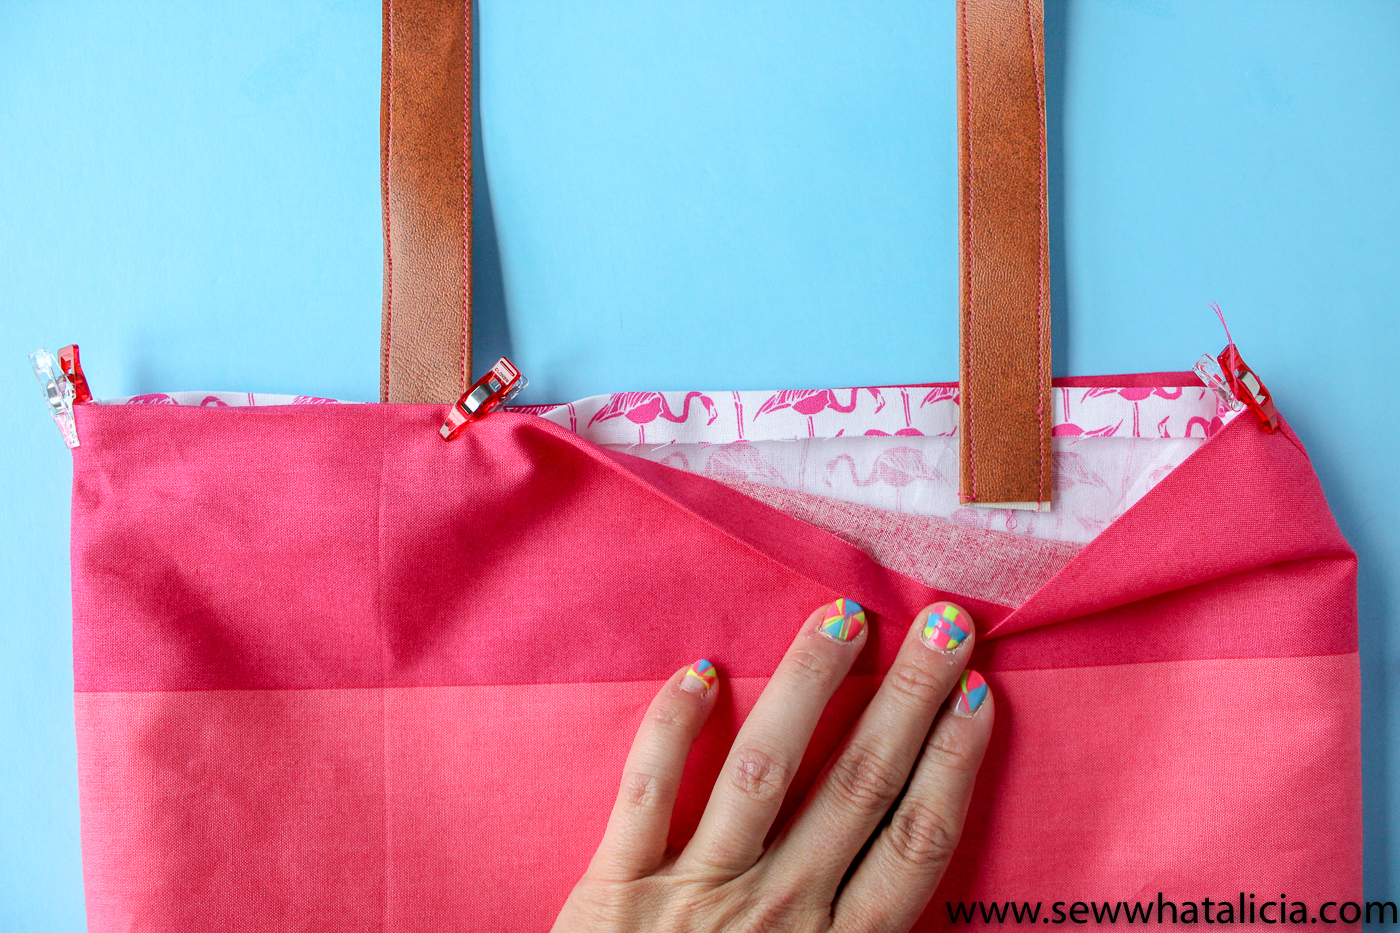 Have 15 minutes? Then you've got enough time to create your next gift idea. Try this 15 minute tote bag from Sew What Alicia. See all the Best Crafts of 2018 from more of your favorite bloggers at Halfpint Design.